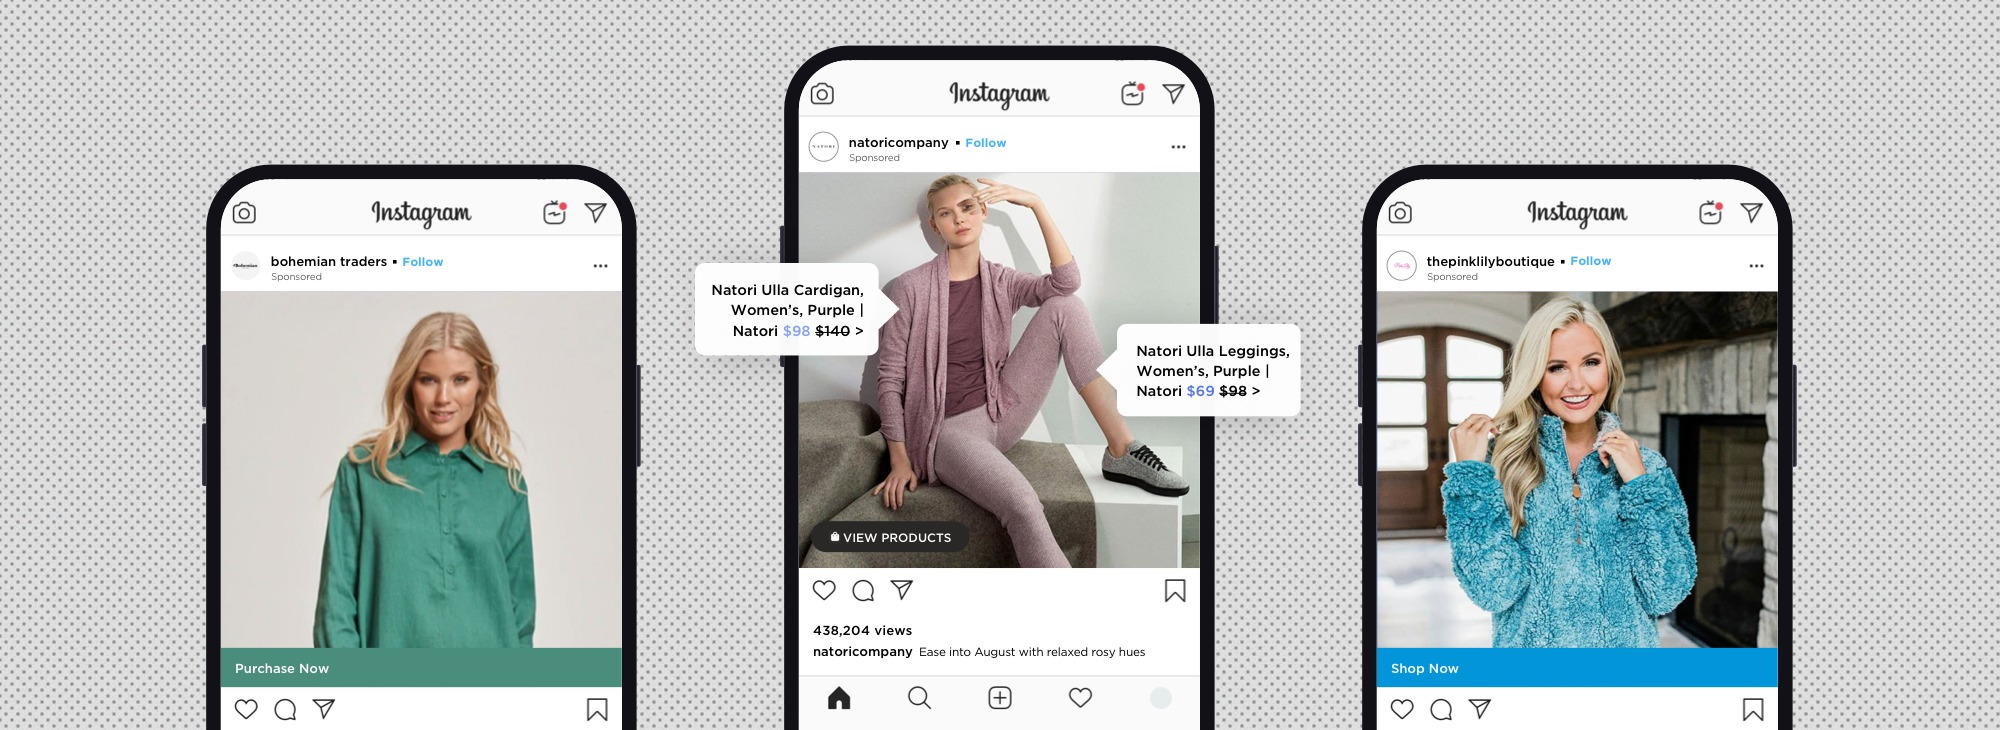 Getting Started with Instagram Ads in 2020 (Guide)